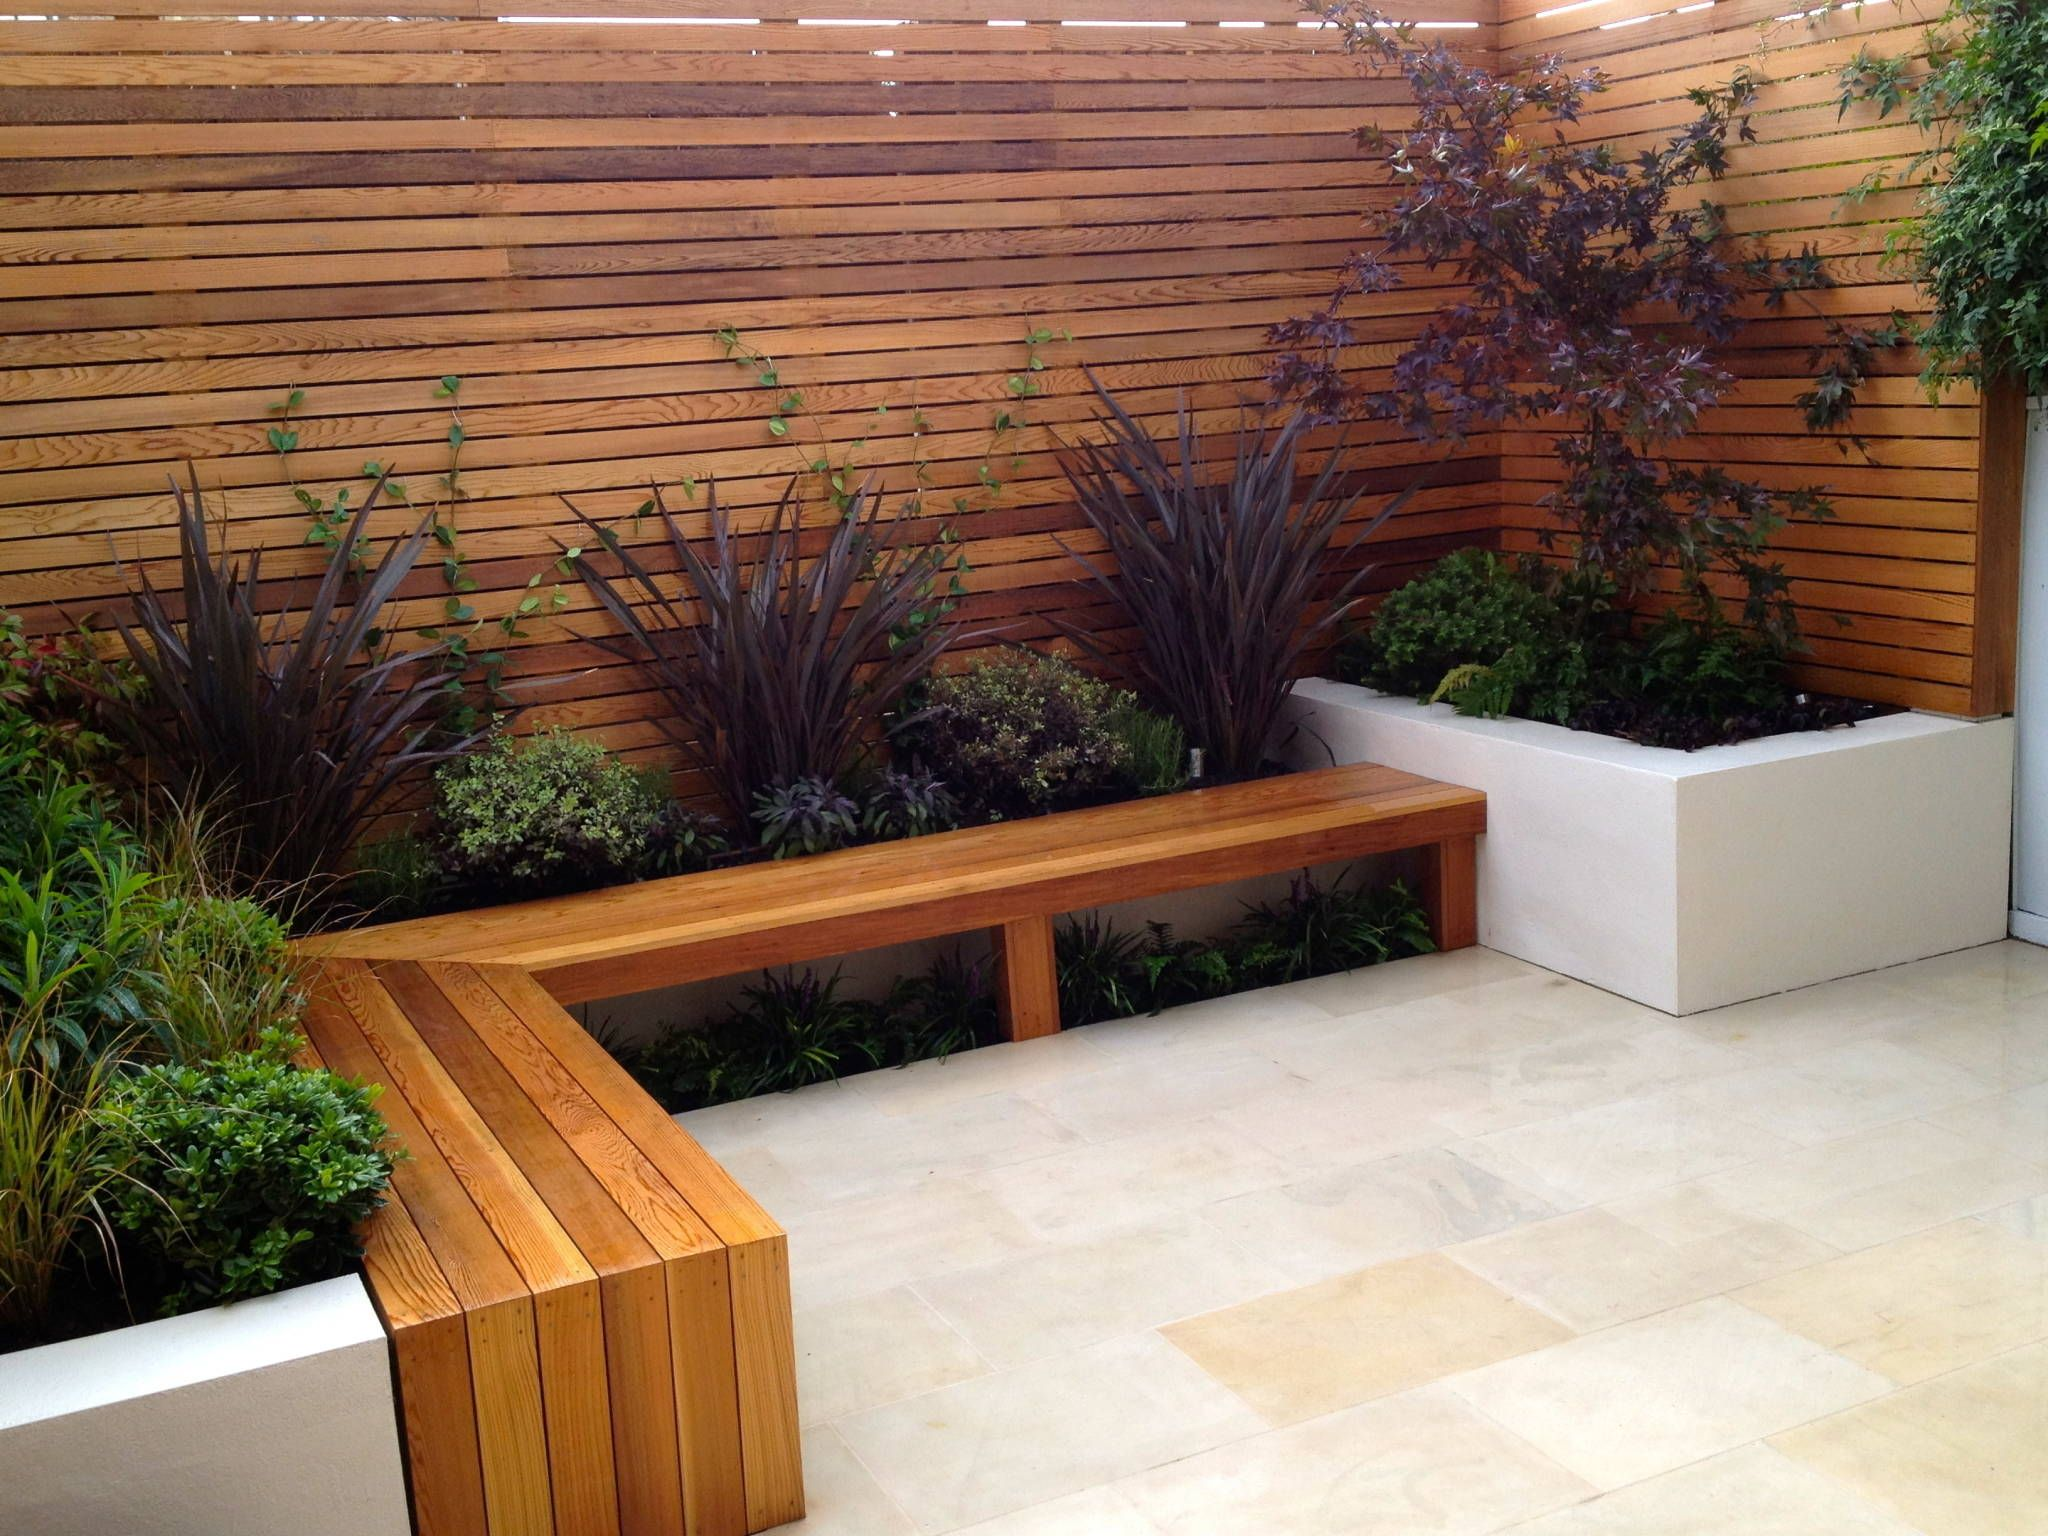 Modern garden photos contemporary garden design balham is part of Modern garden Seating - Browse images of modern Garden designs Contemporary Garden Design Balham  Find the best photos for ideas & inspiration to create your perfect home